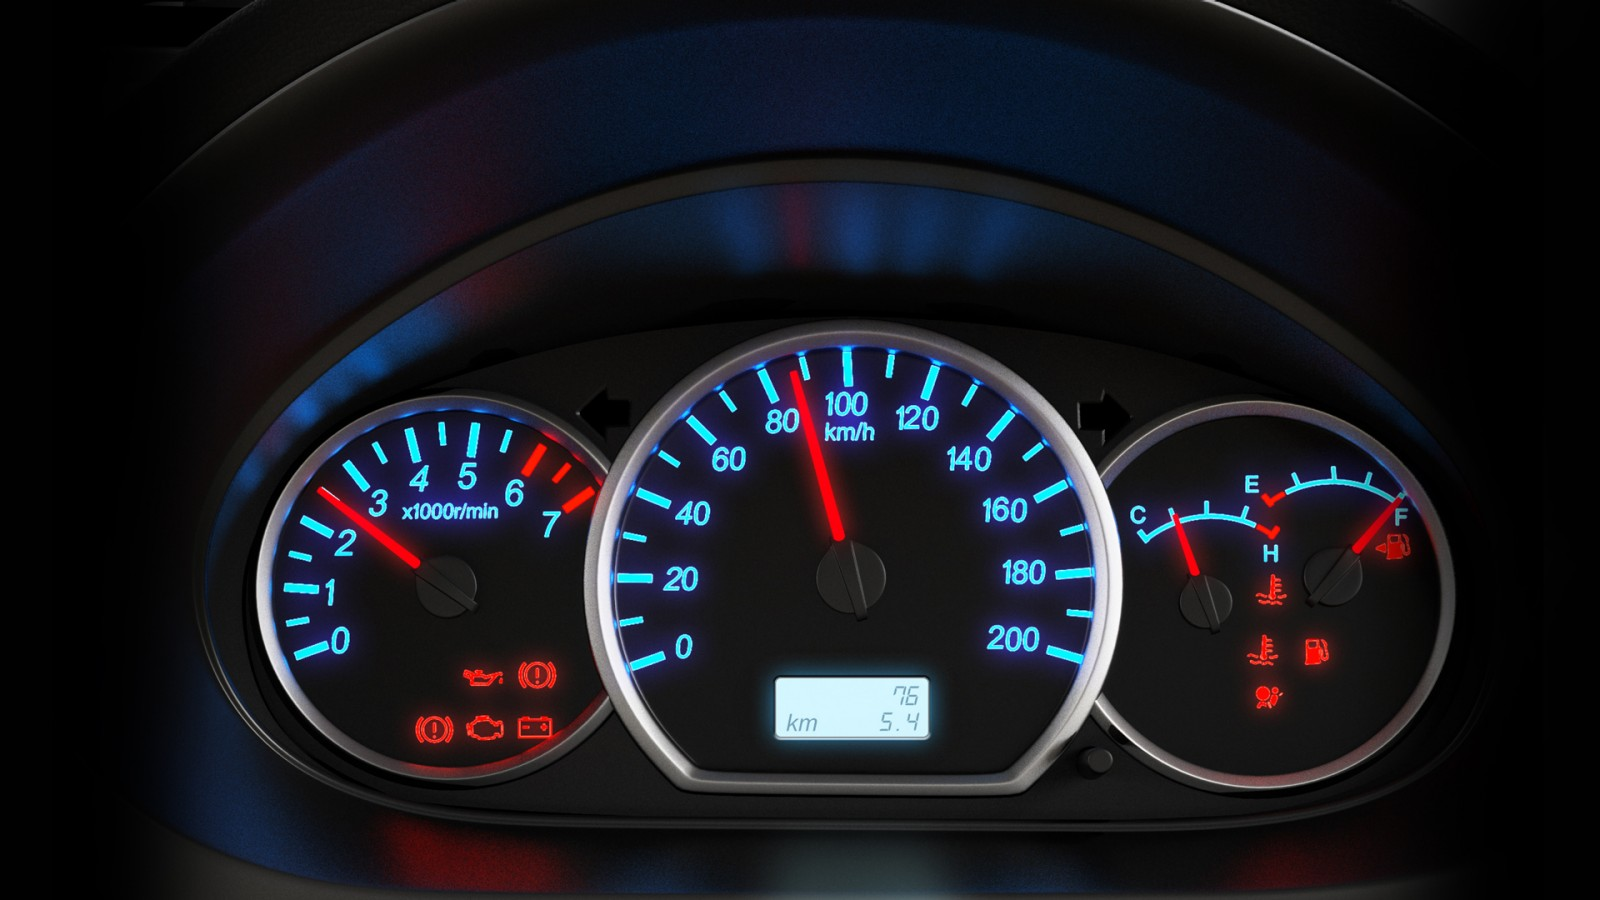 Vehicle Instrument Panel : Enjoy instrument cluster